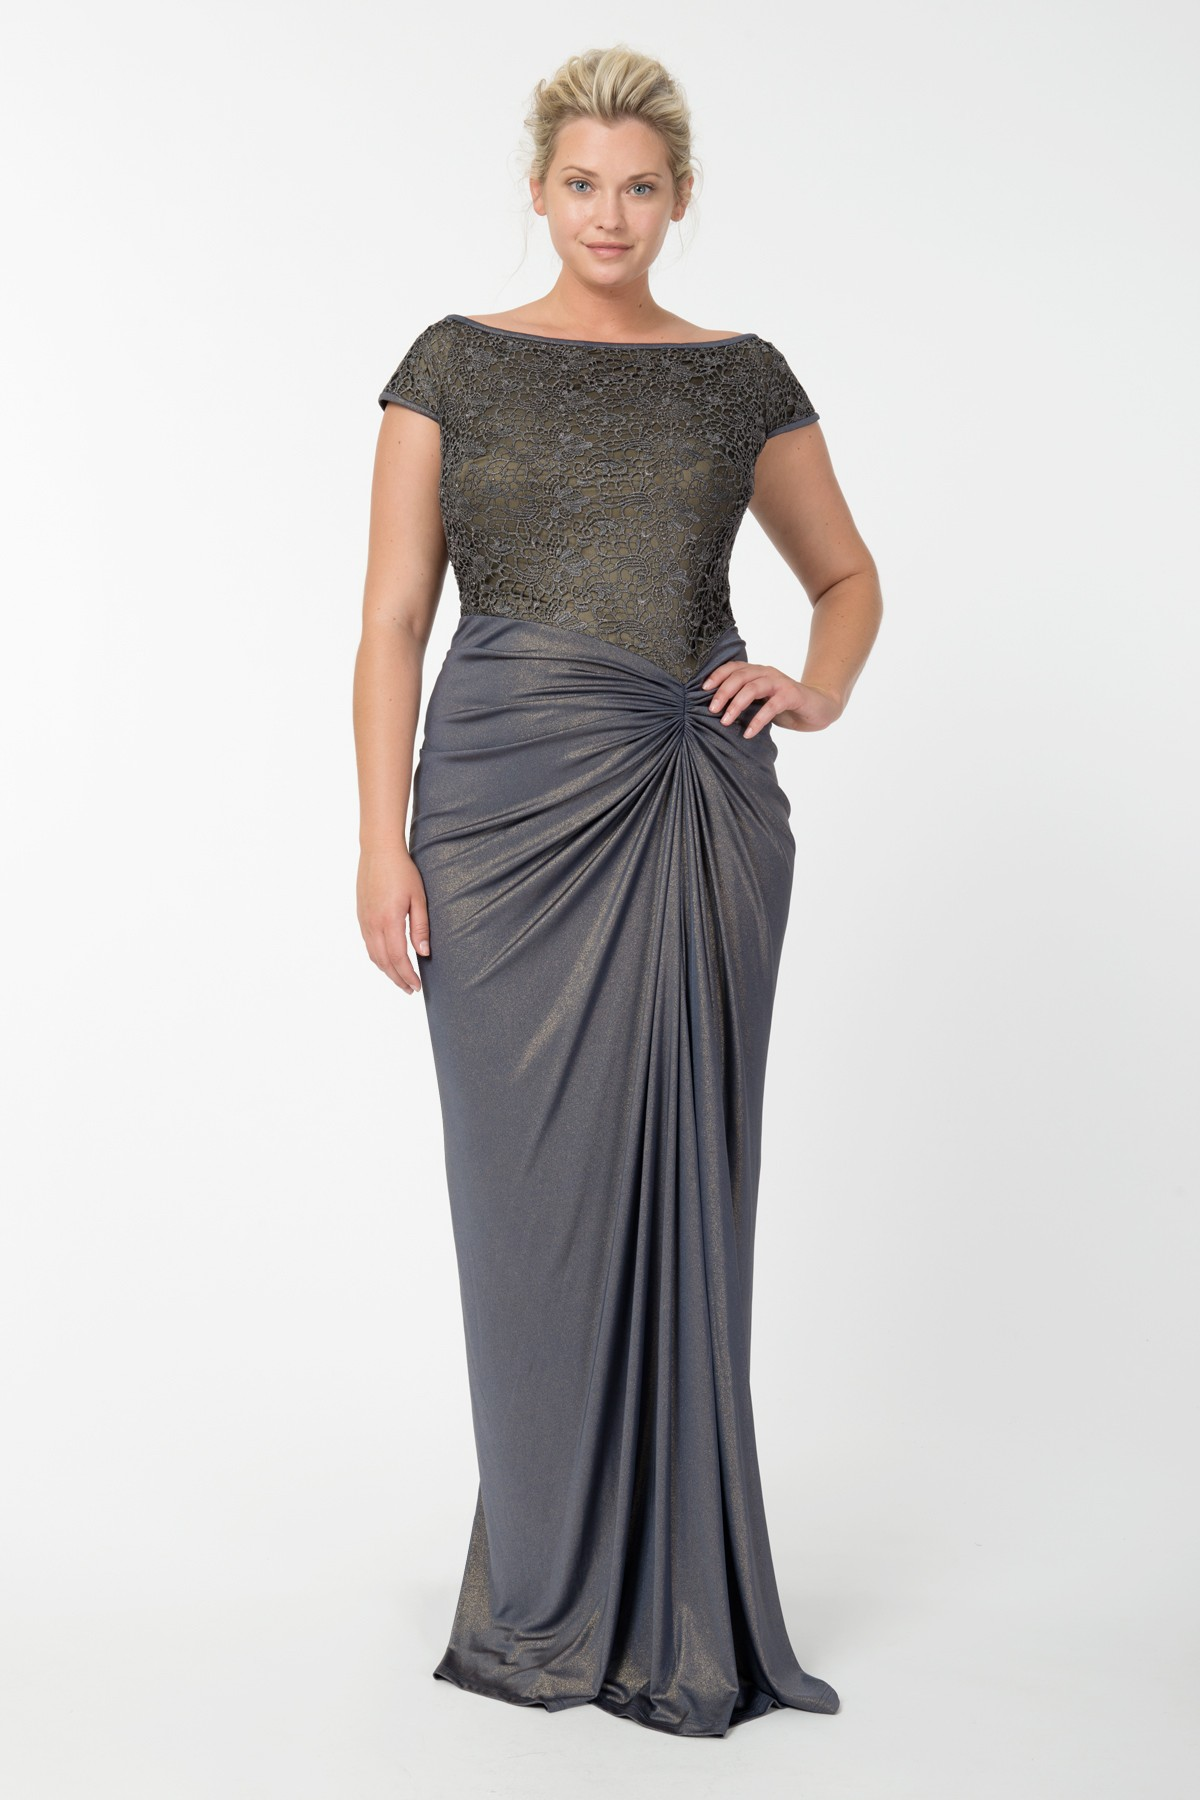 Plus Size Evening Wear Dresses